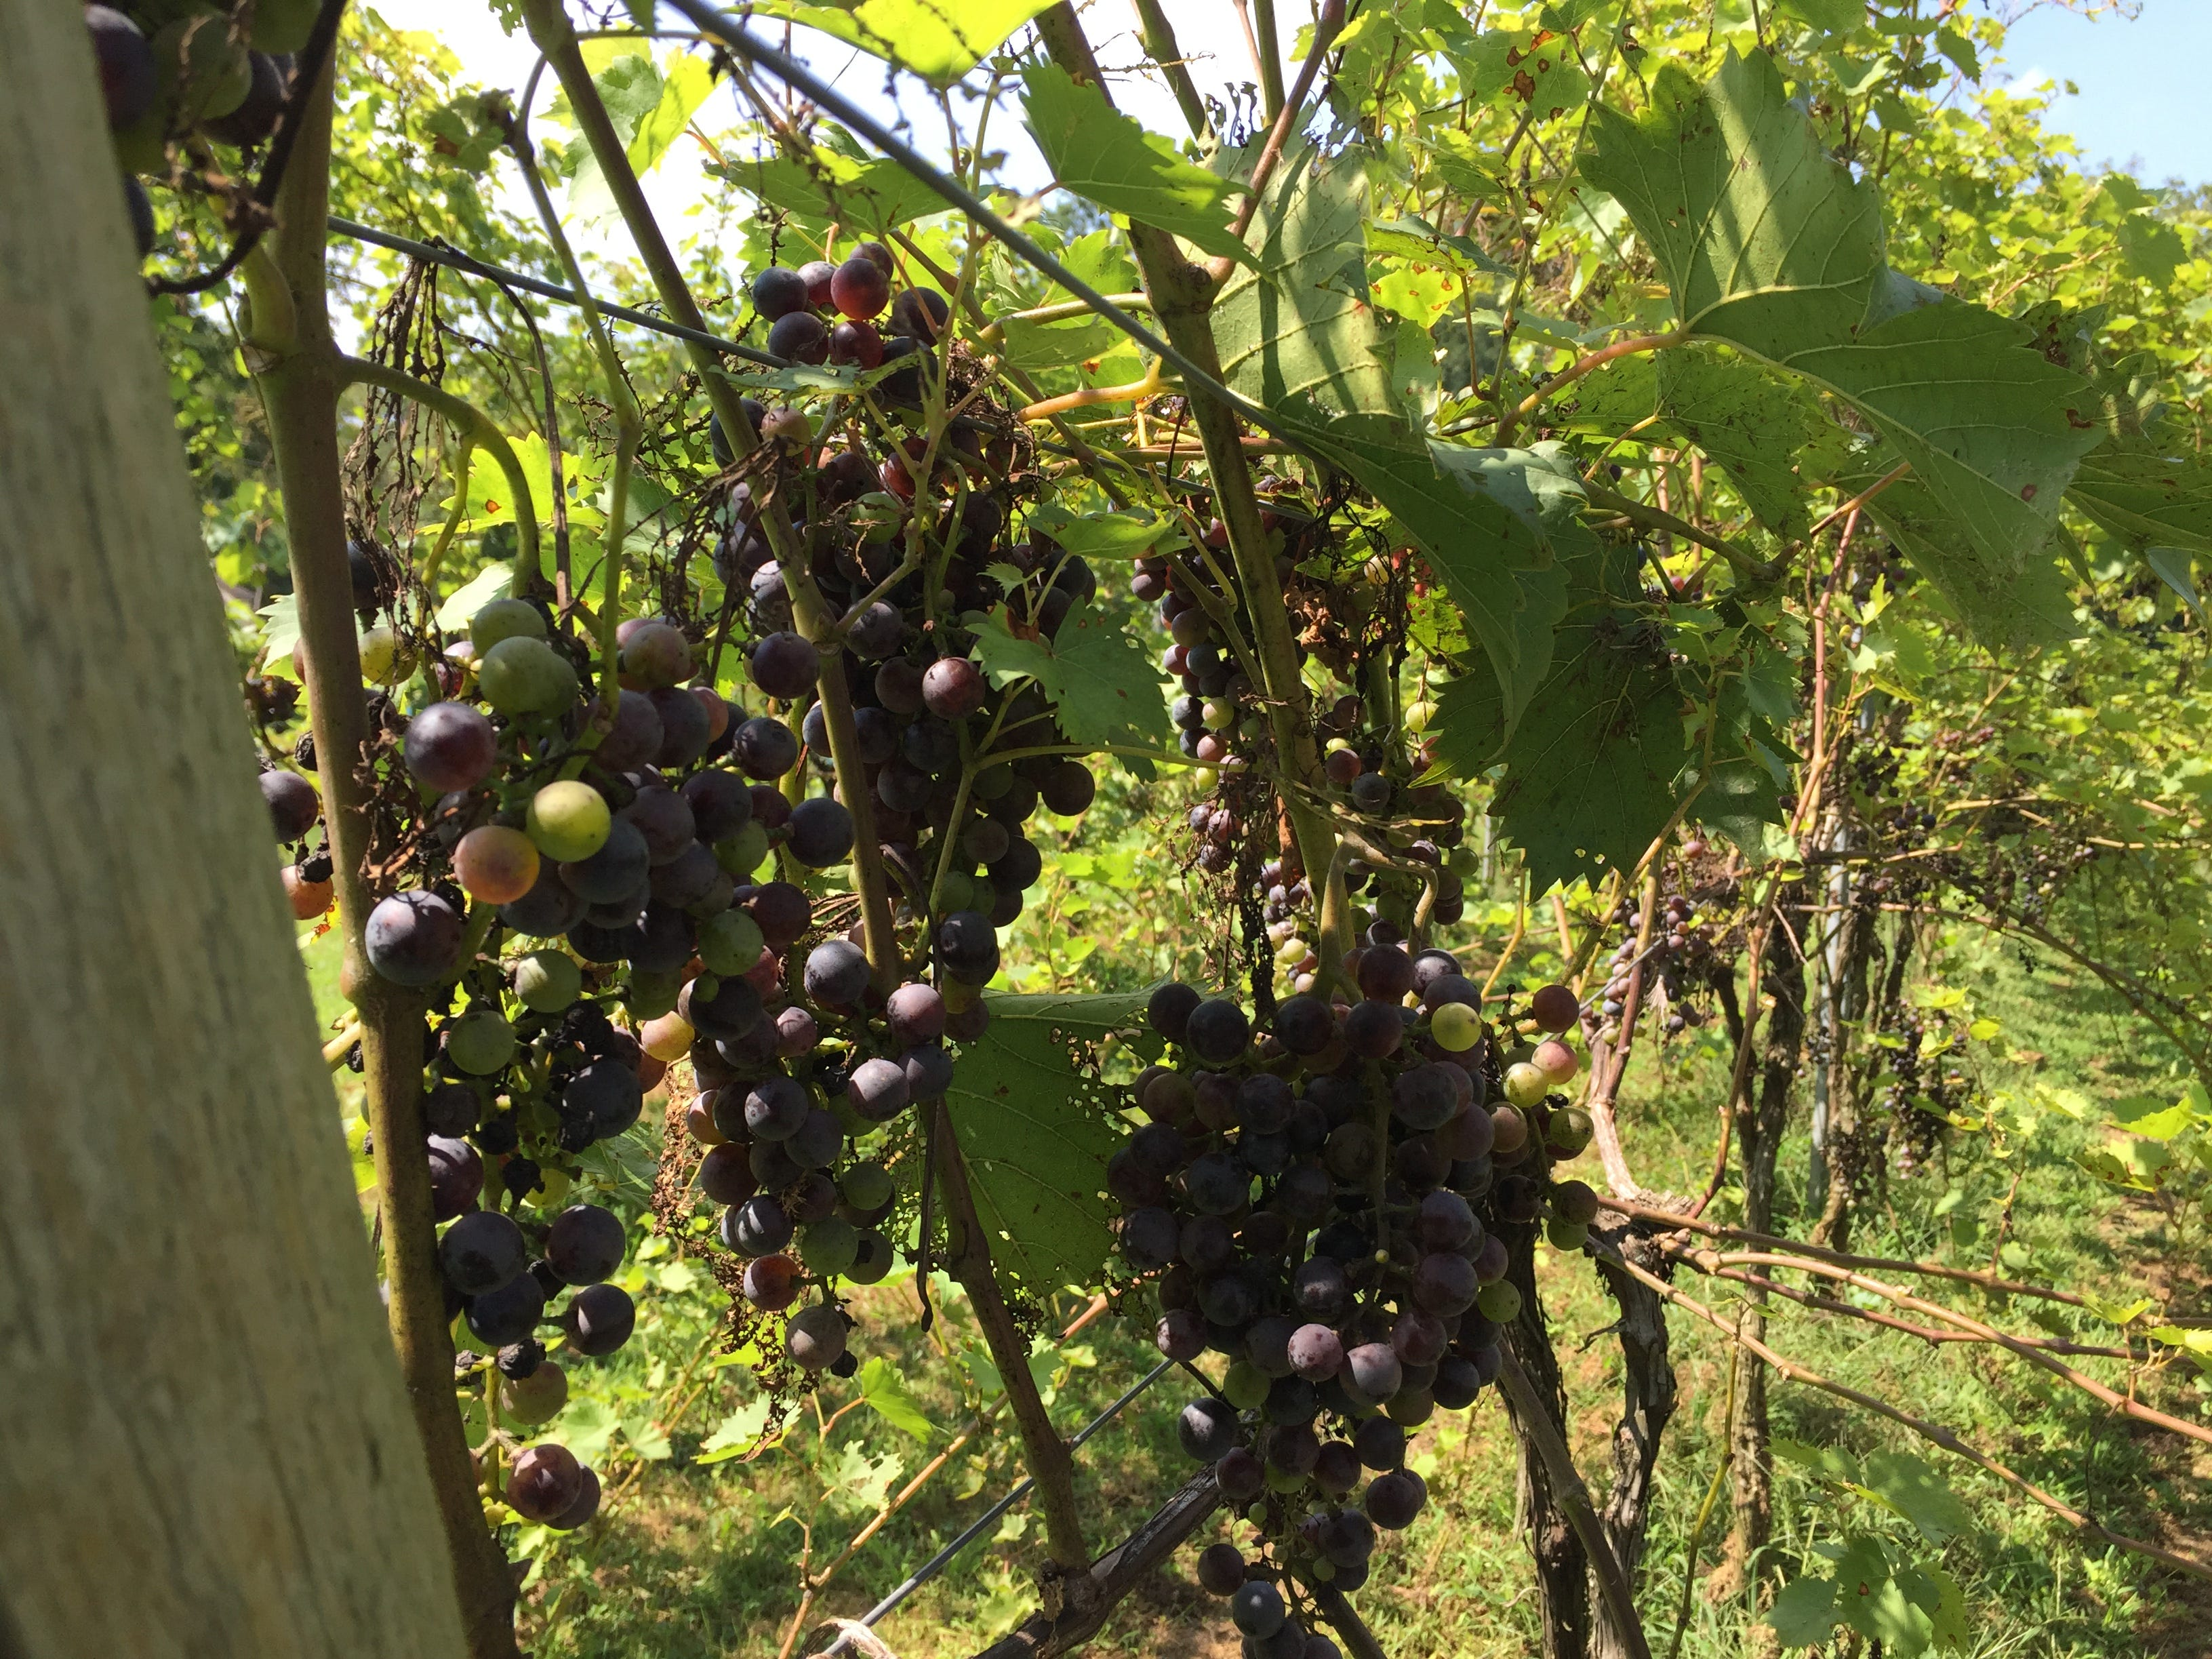 Grapes on the vine at Royal Oaks Vineyard & Winery located at 399 Royal Road, Aug. 29, 2018. The winery has remained open despite an ongoing legal battle over zoning issues between Bill Hartmann, the winery's owner, and North Cornwall Township.